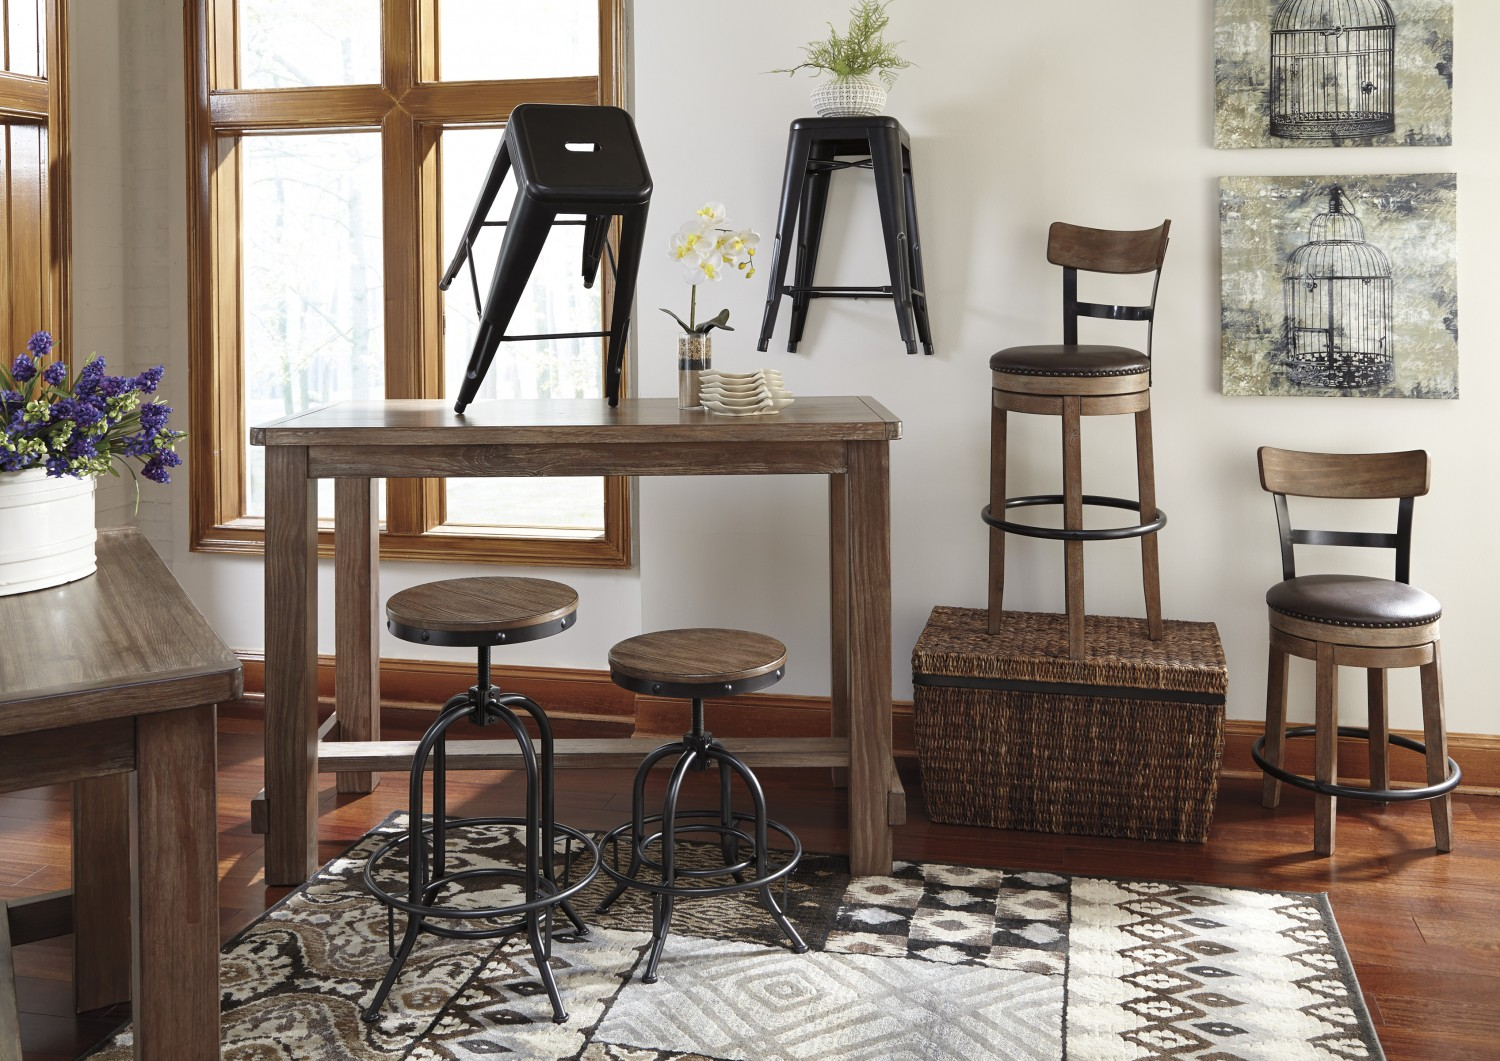 Dining Room Chairs: How To Get An Effortlessly Eclectic Look